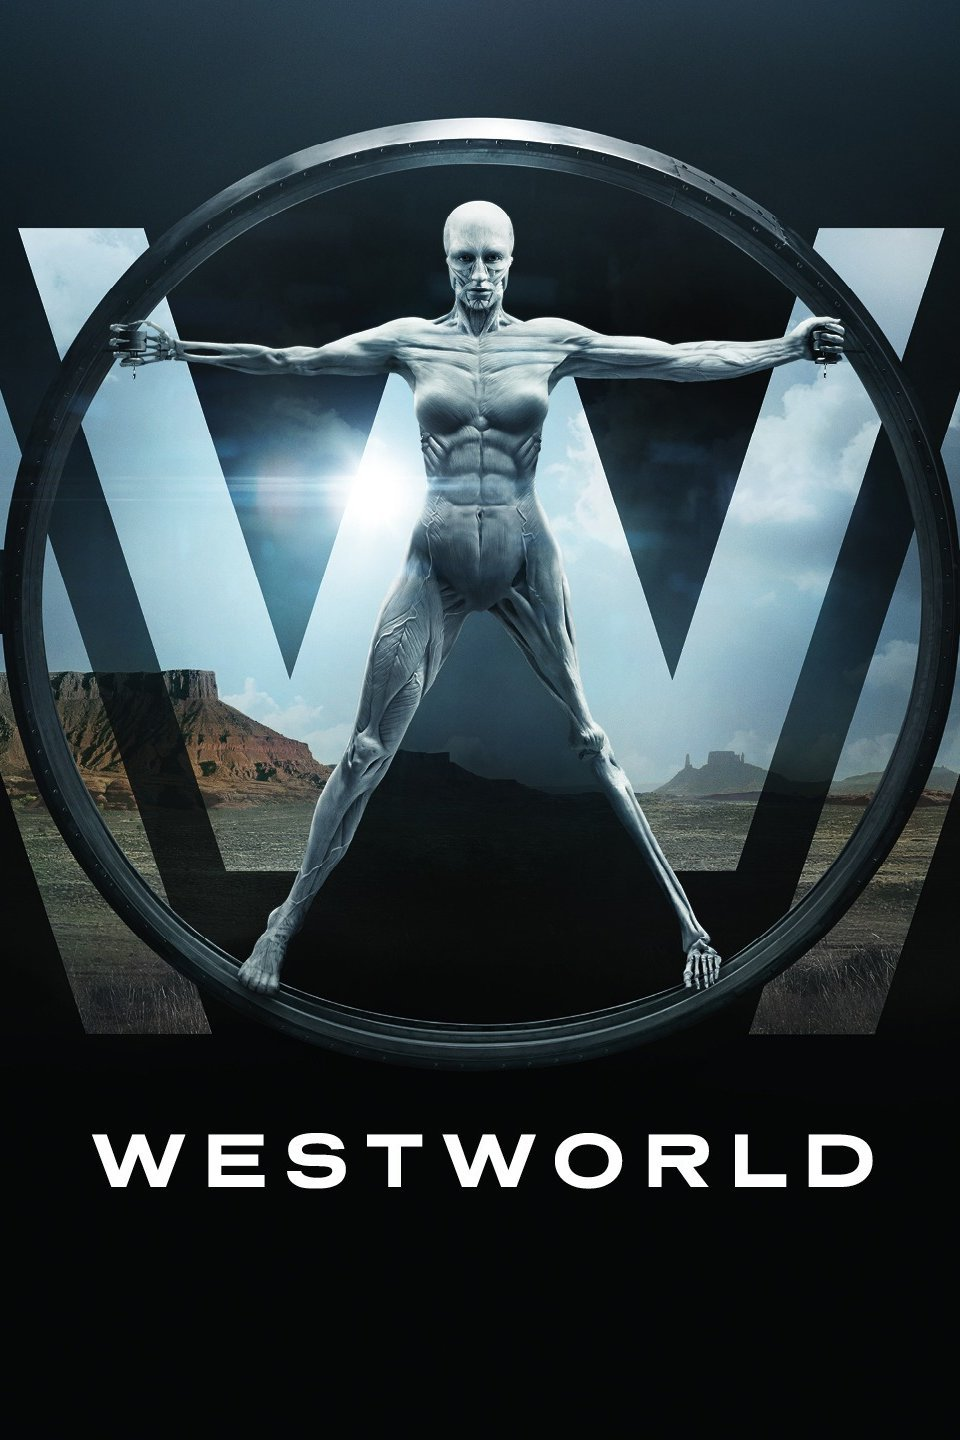 Westworld season 1 (book cover)